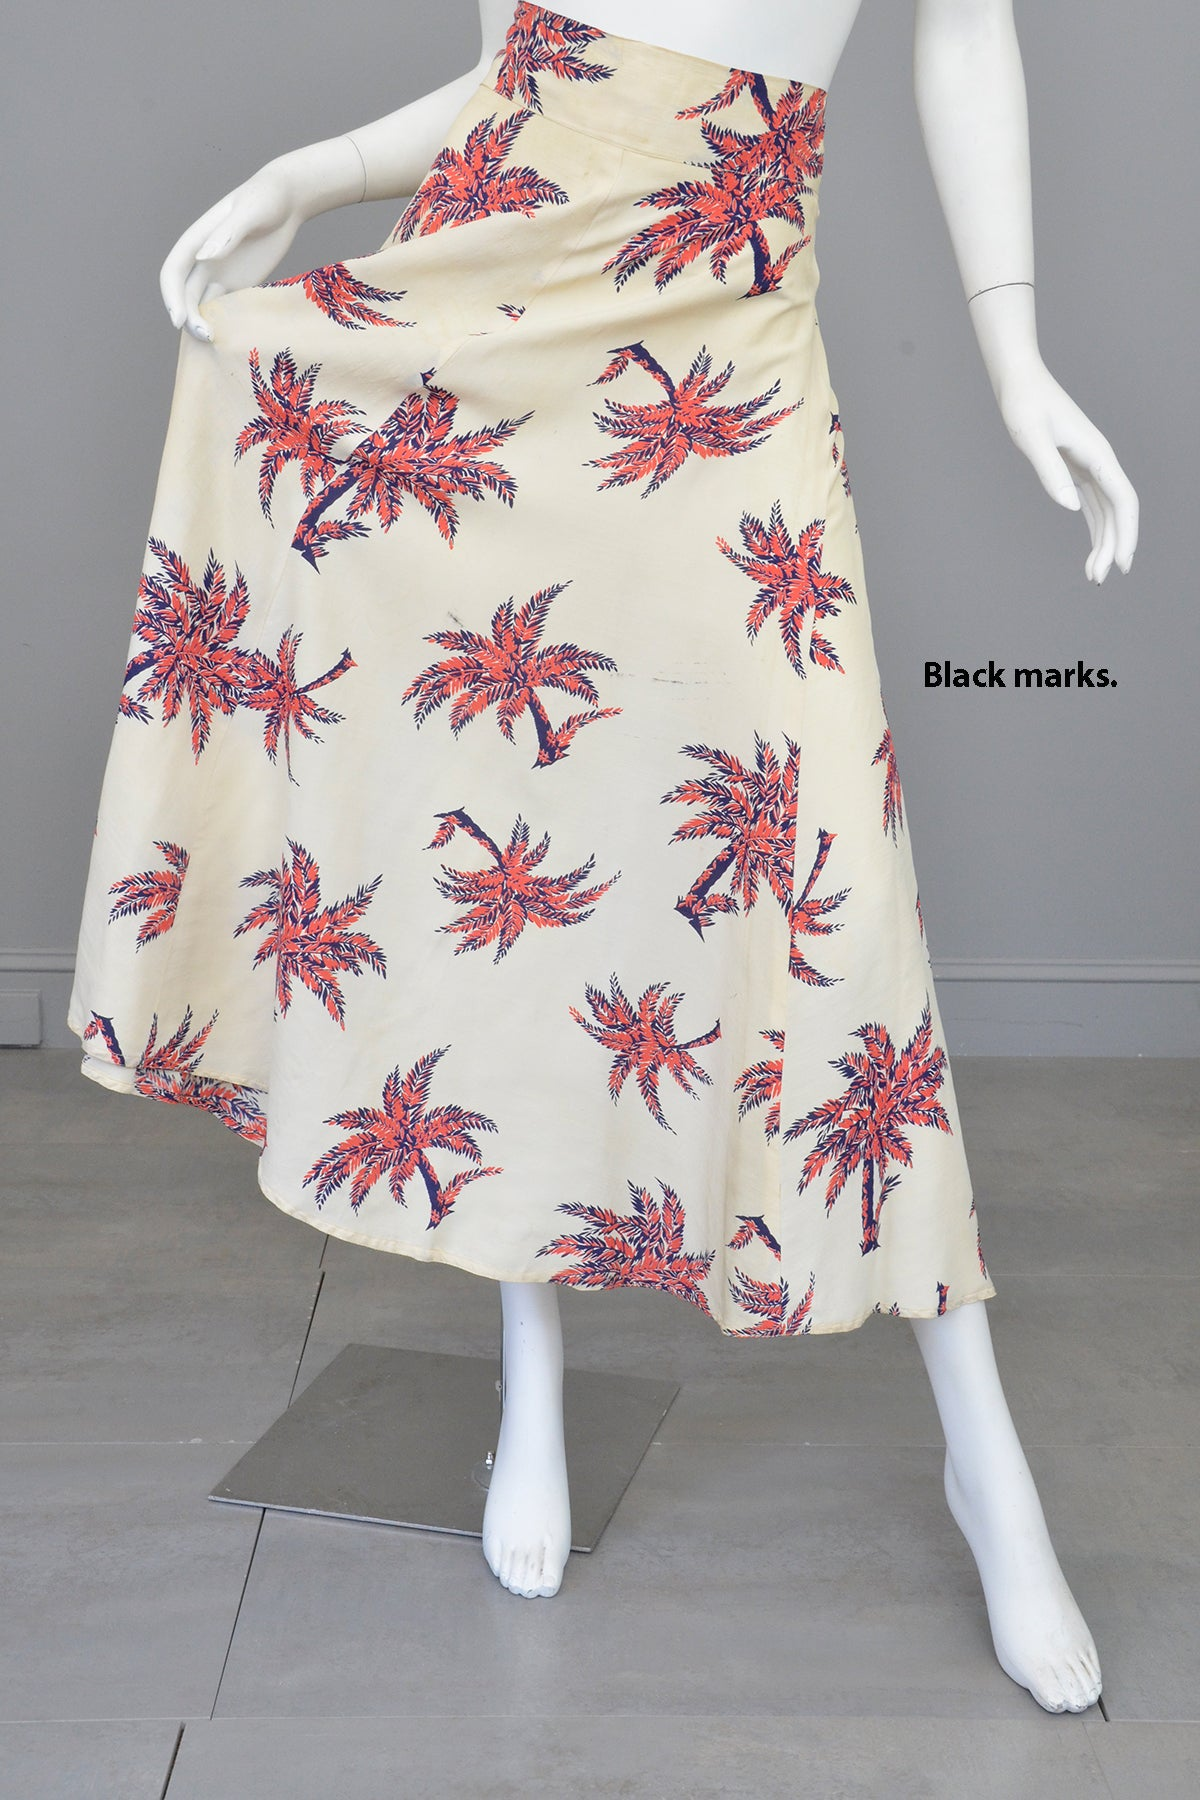 1940s Palm Tree Novelty Print Skirt - Needs cleaning + TLC